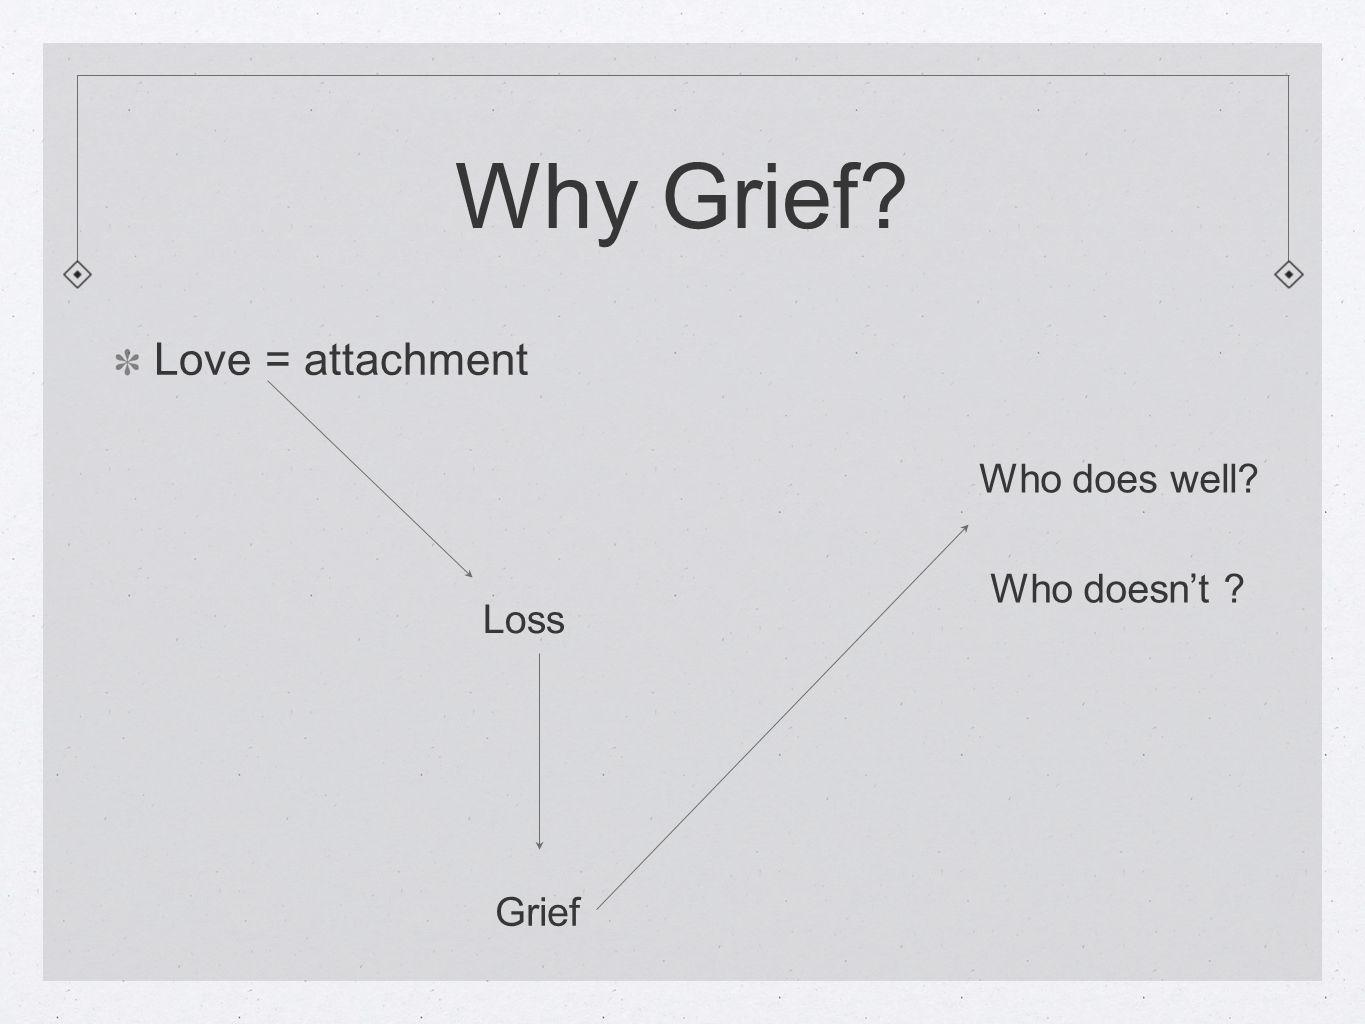 Why Grief Love = attachment Who does well Who doesn't Loss Grief